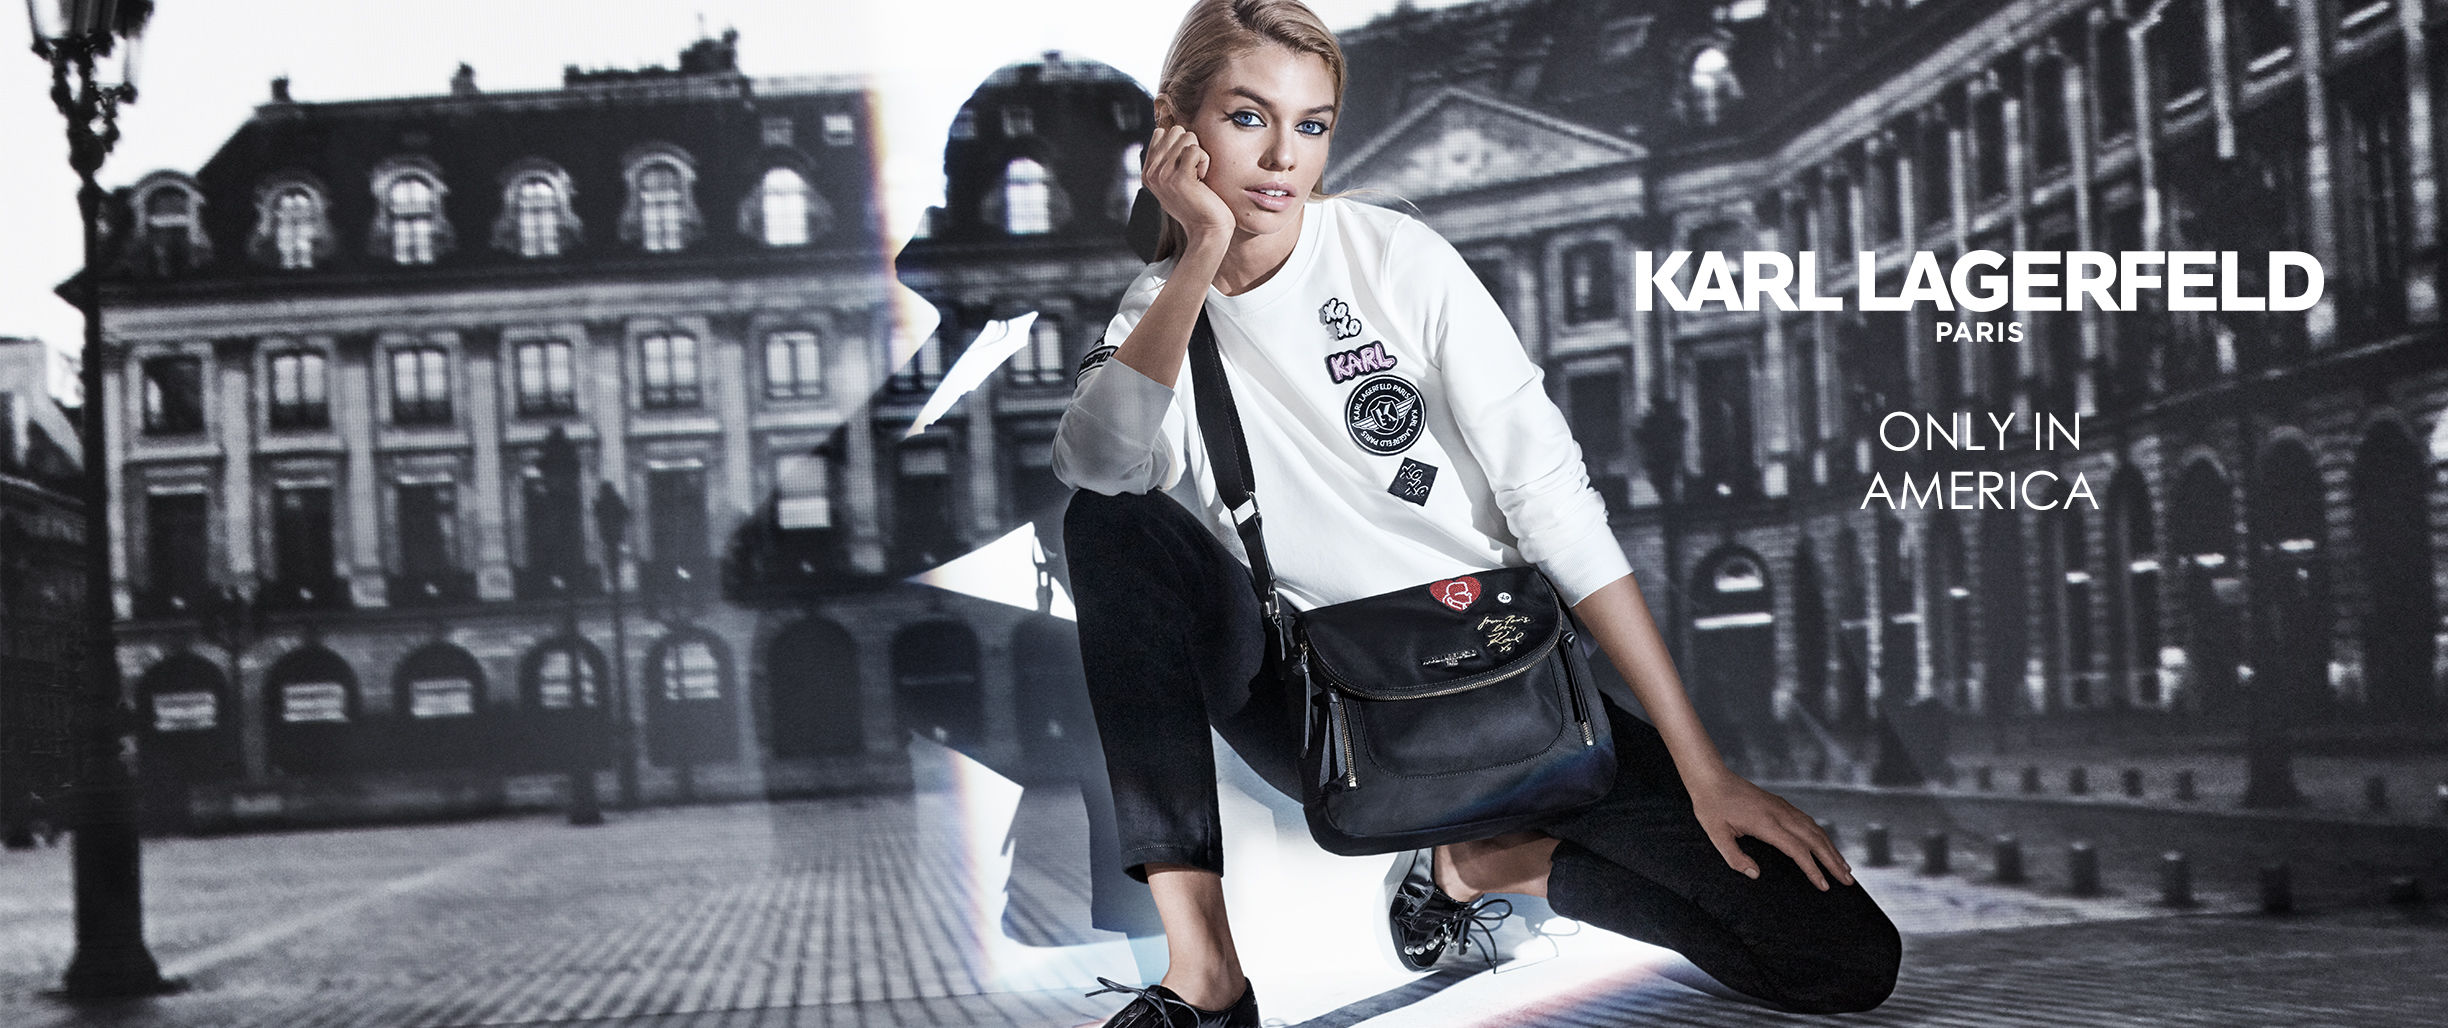 KARL LAGERFELD PARIS SHOP NOW